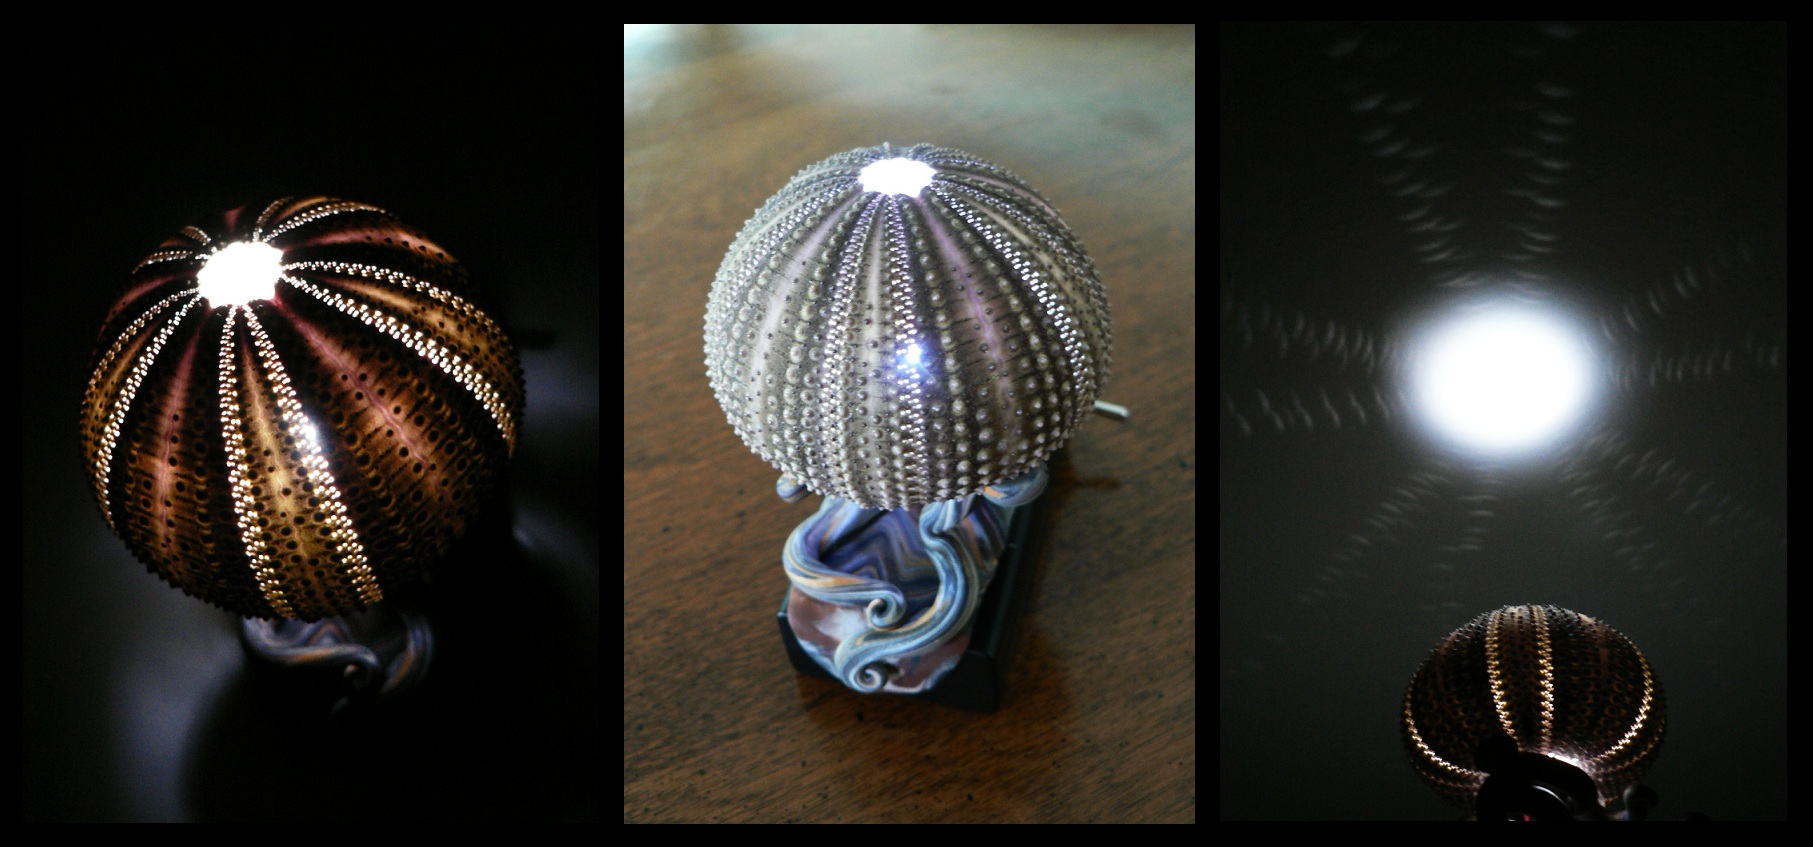 urchin_lamp_by_blackmagdalena-d46ej6x